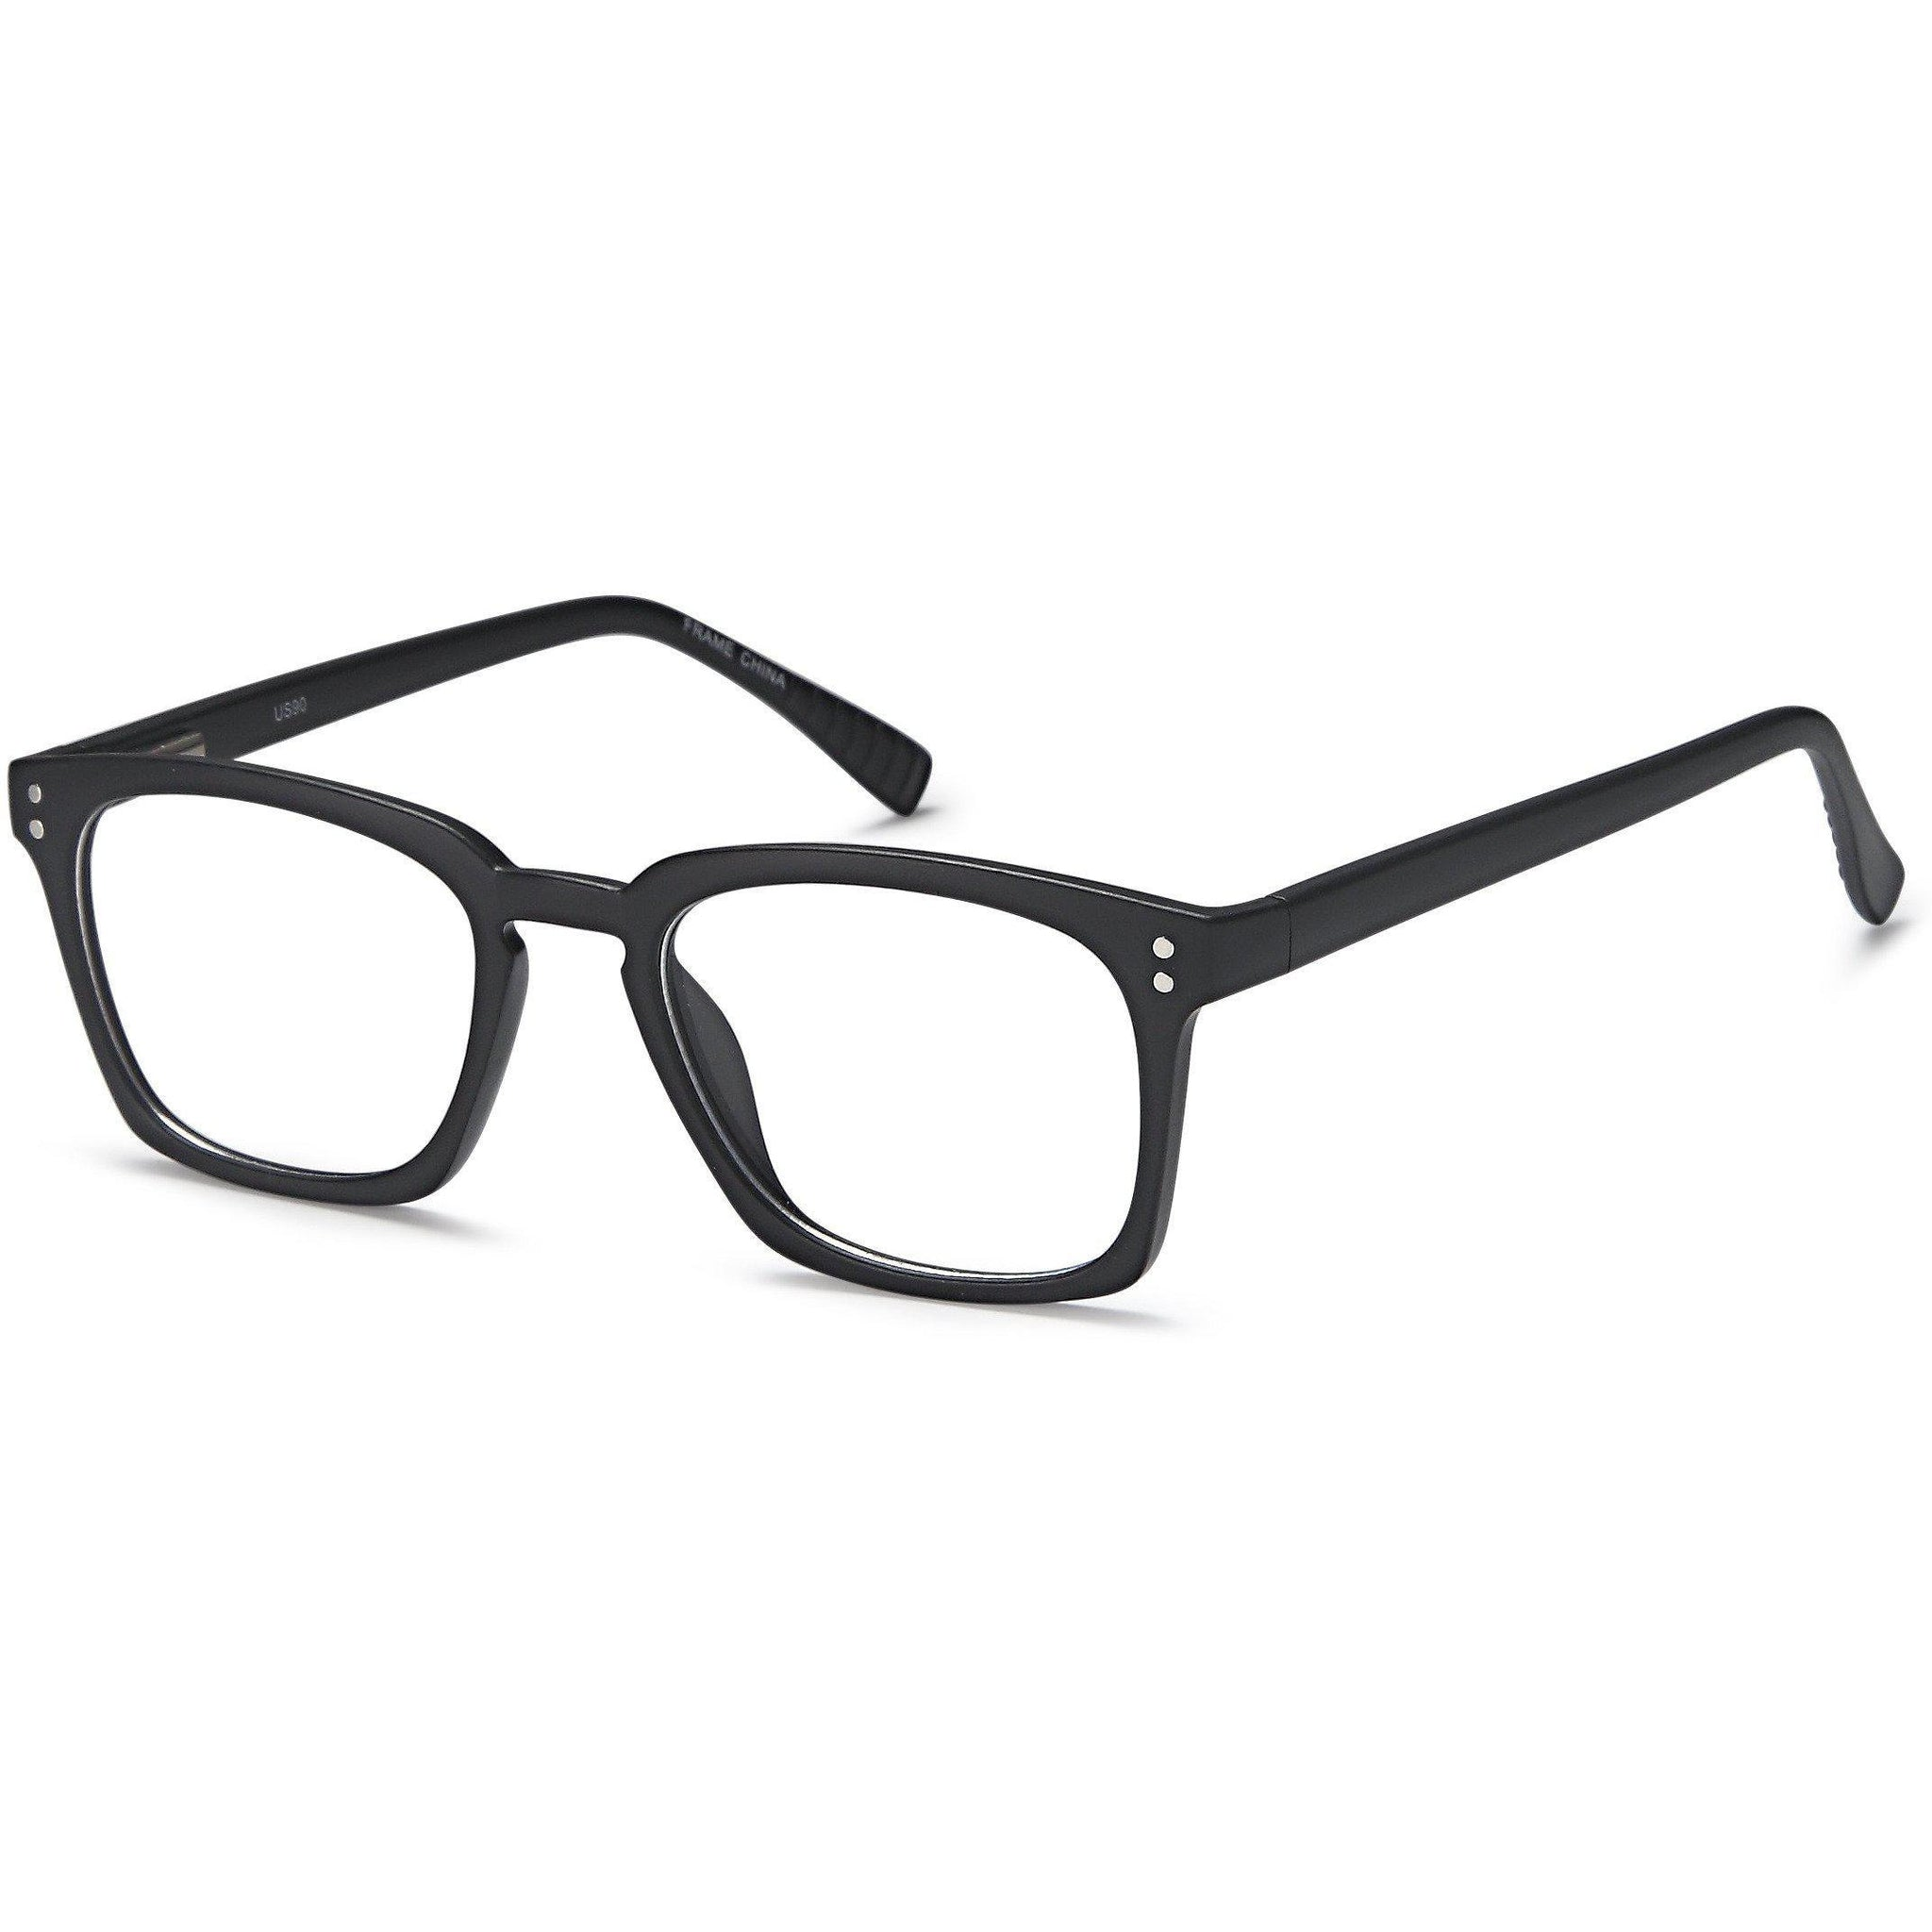 4U Prescription Glasses US 90 Optical Eyeglasses Frame - timetoshade